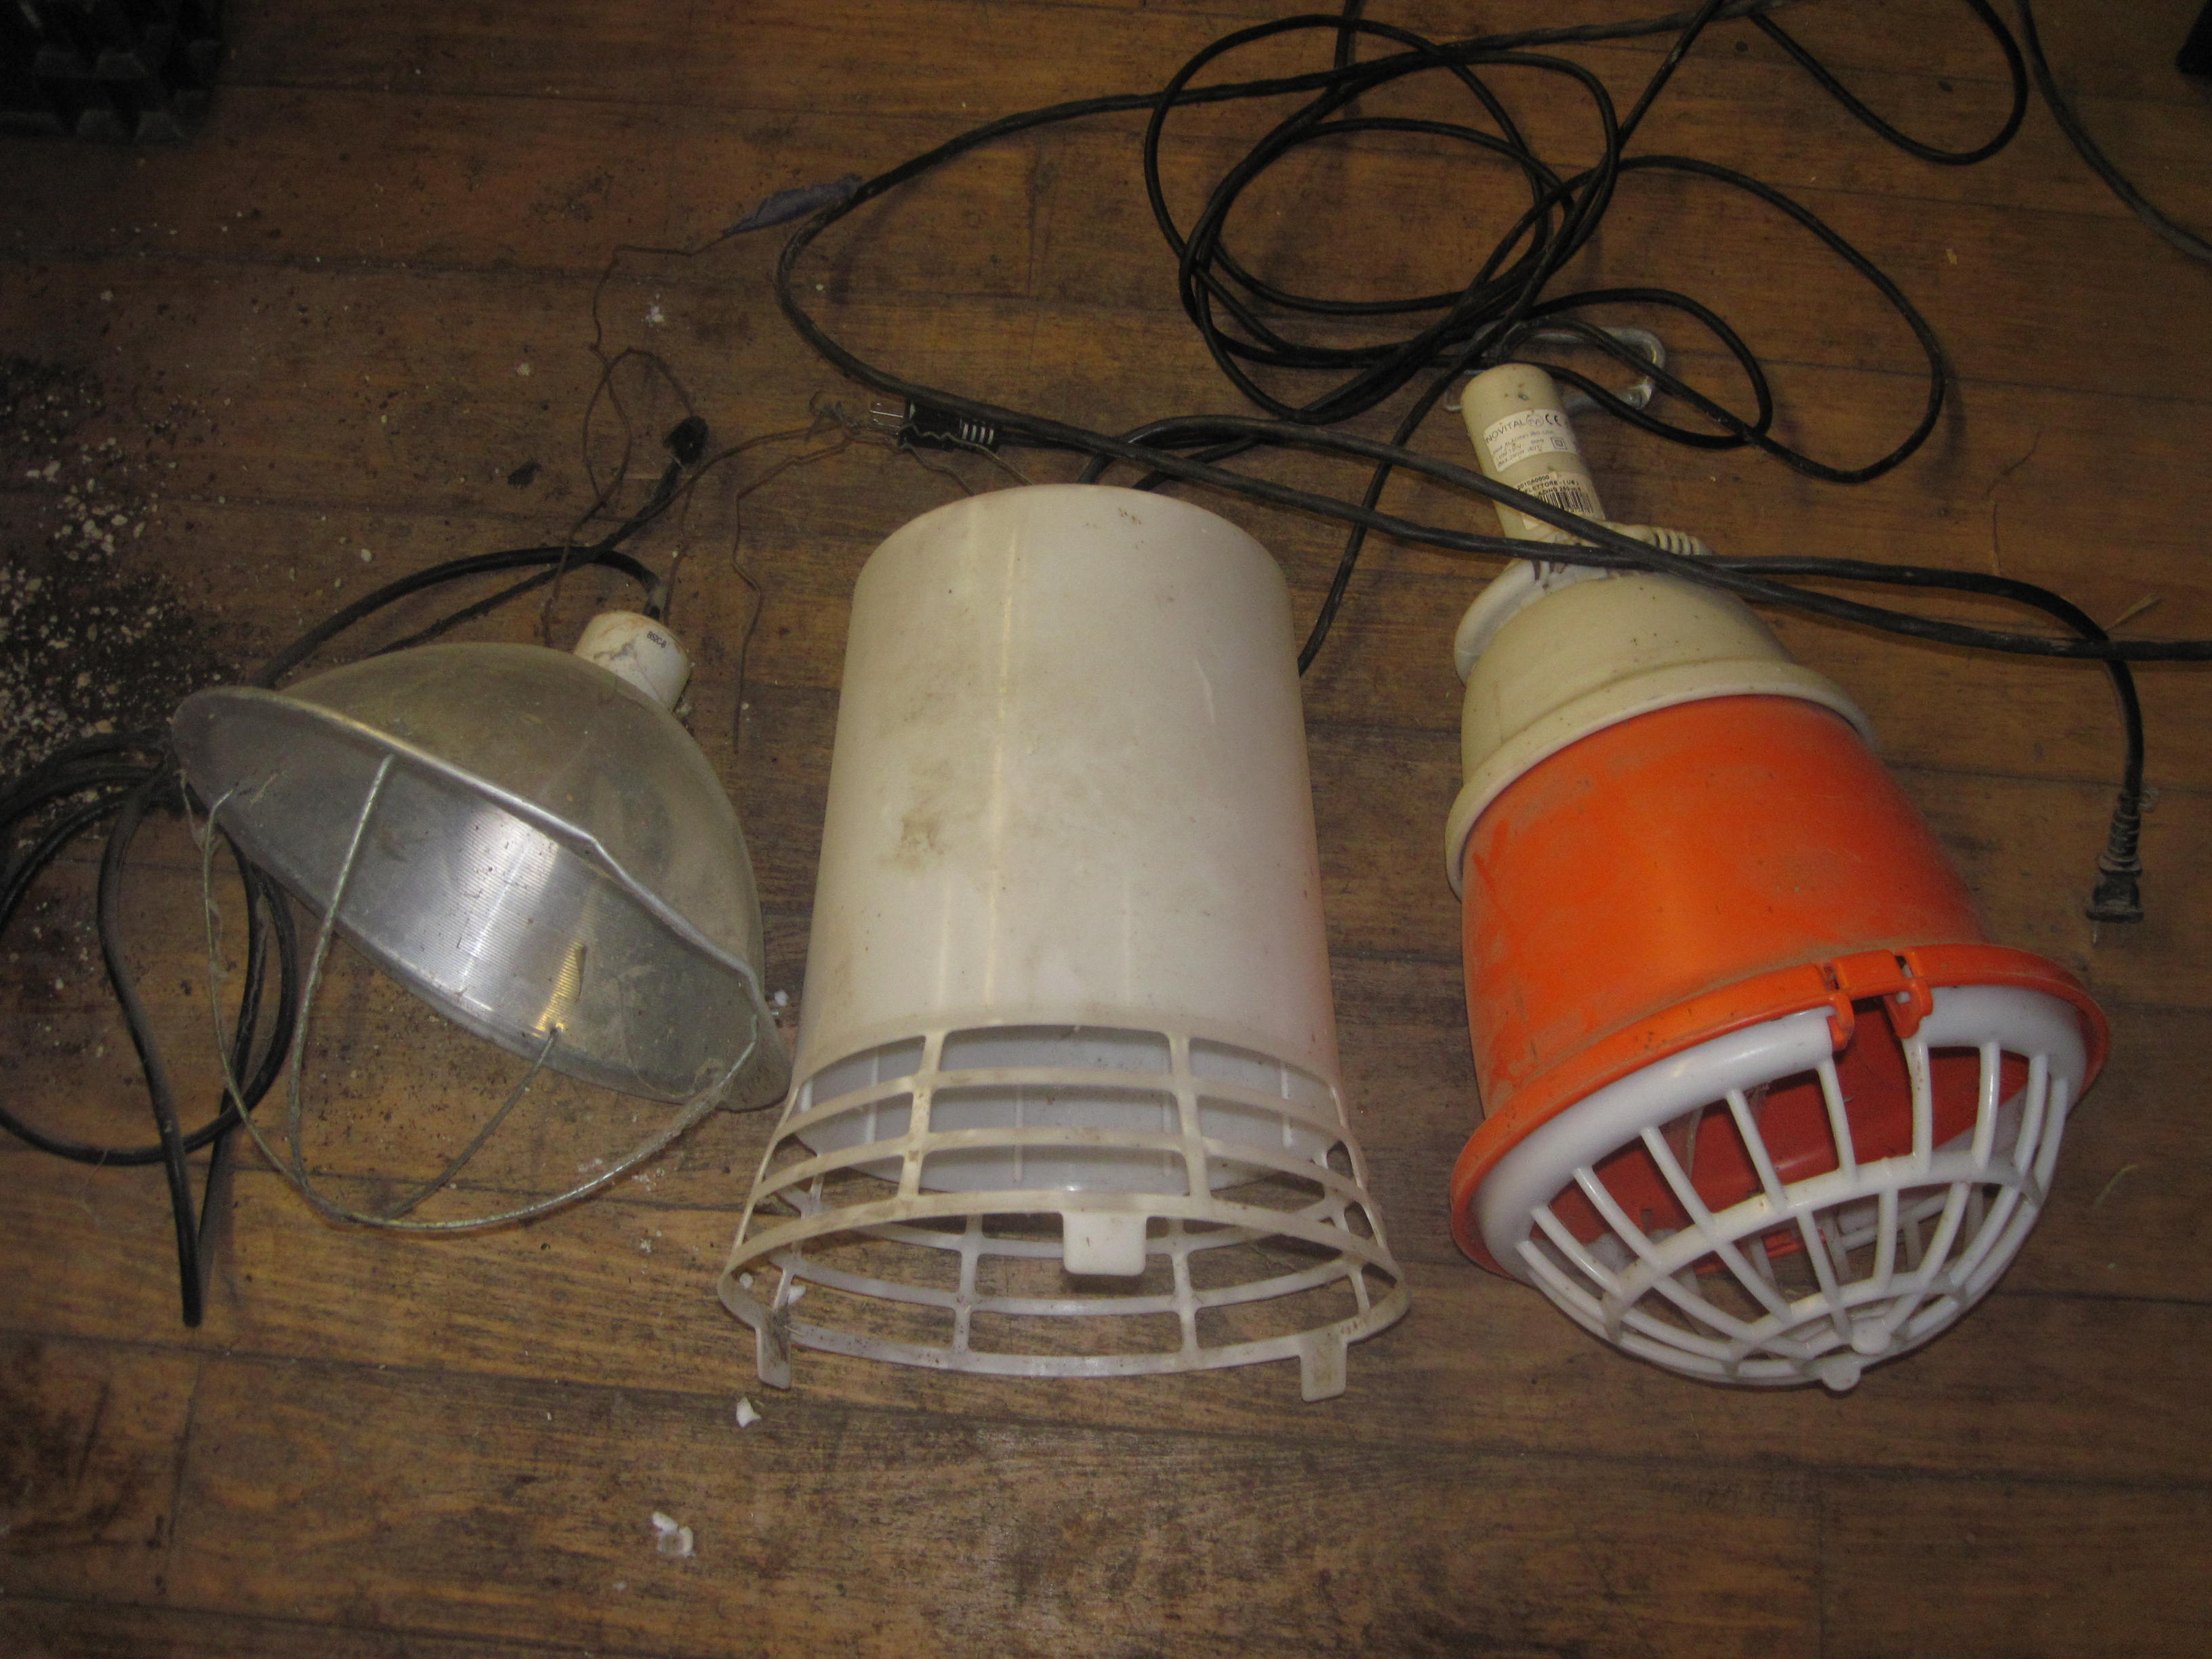 Managing Risk Using Heat Lamps On The Farm Cornell Small Farms Wiring Covers Three Styles Of Least Expensive And Riskiest Left To Most